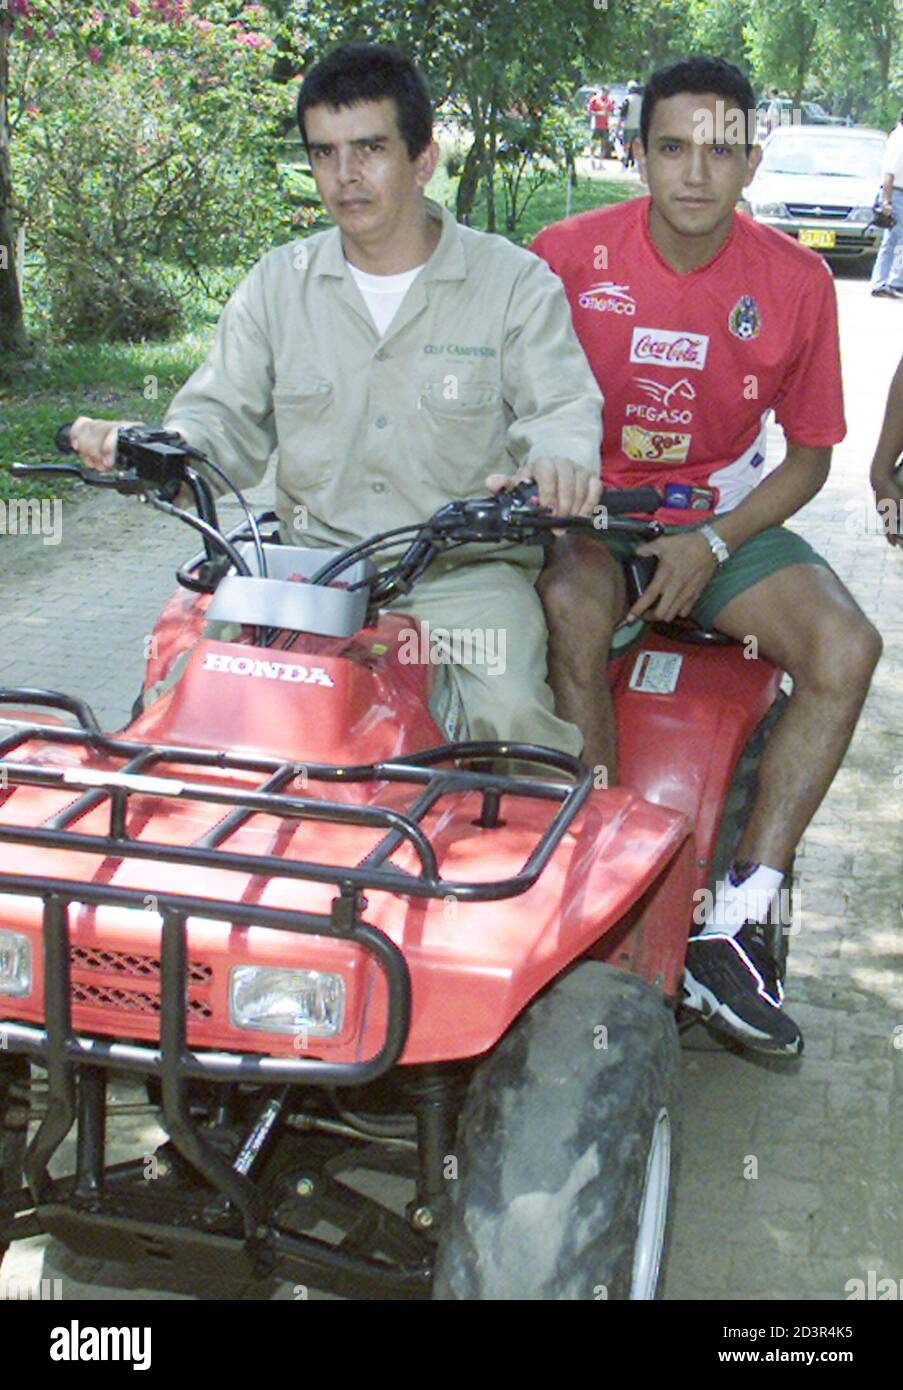 Mexican Ramon Morales rides an ATV to the training field at the Campestre Club in Cali where the team is staying during the Copa America, July 13, 2001. Mexico upset Brazil in their first match of the tournament and plays Paraguay on July 15.  RR/SV Stock Photo